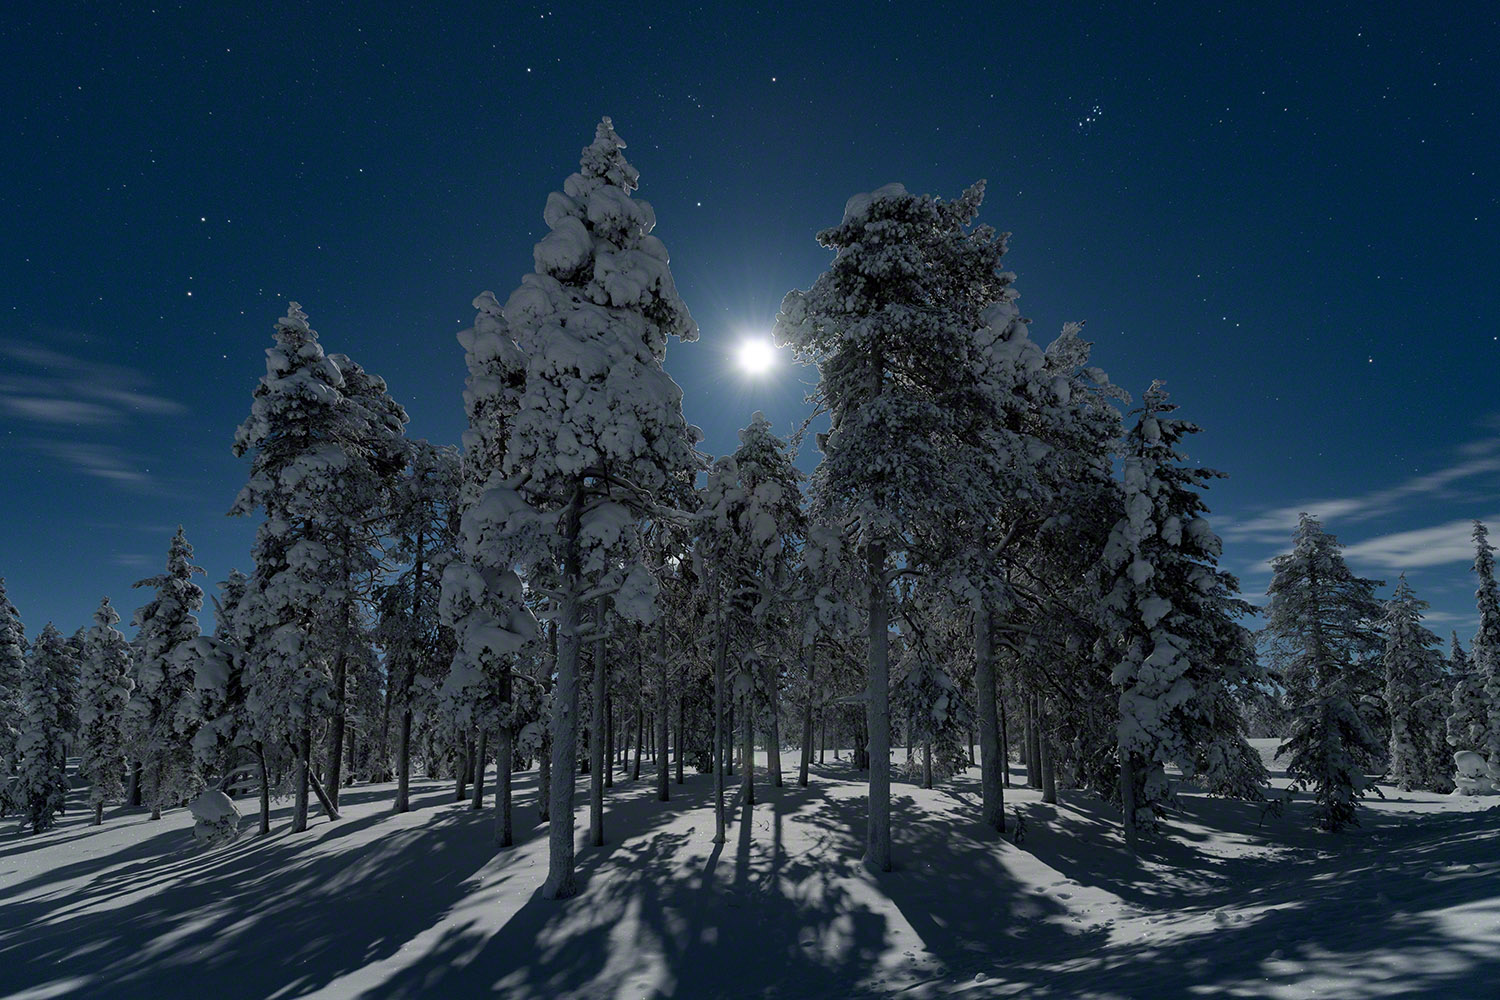 Moonlight fairytale forest